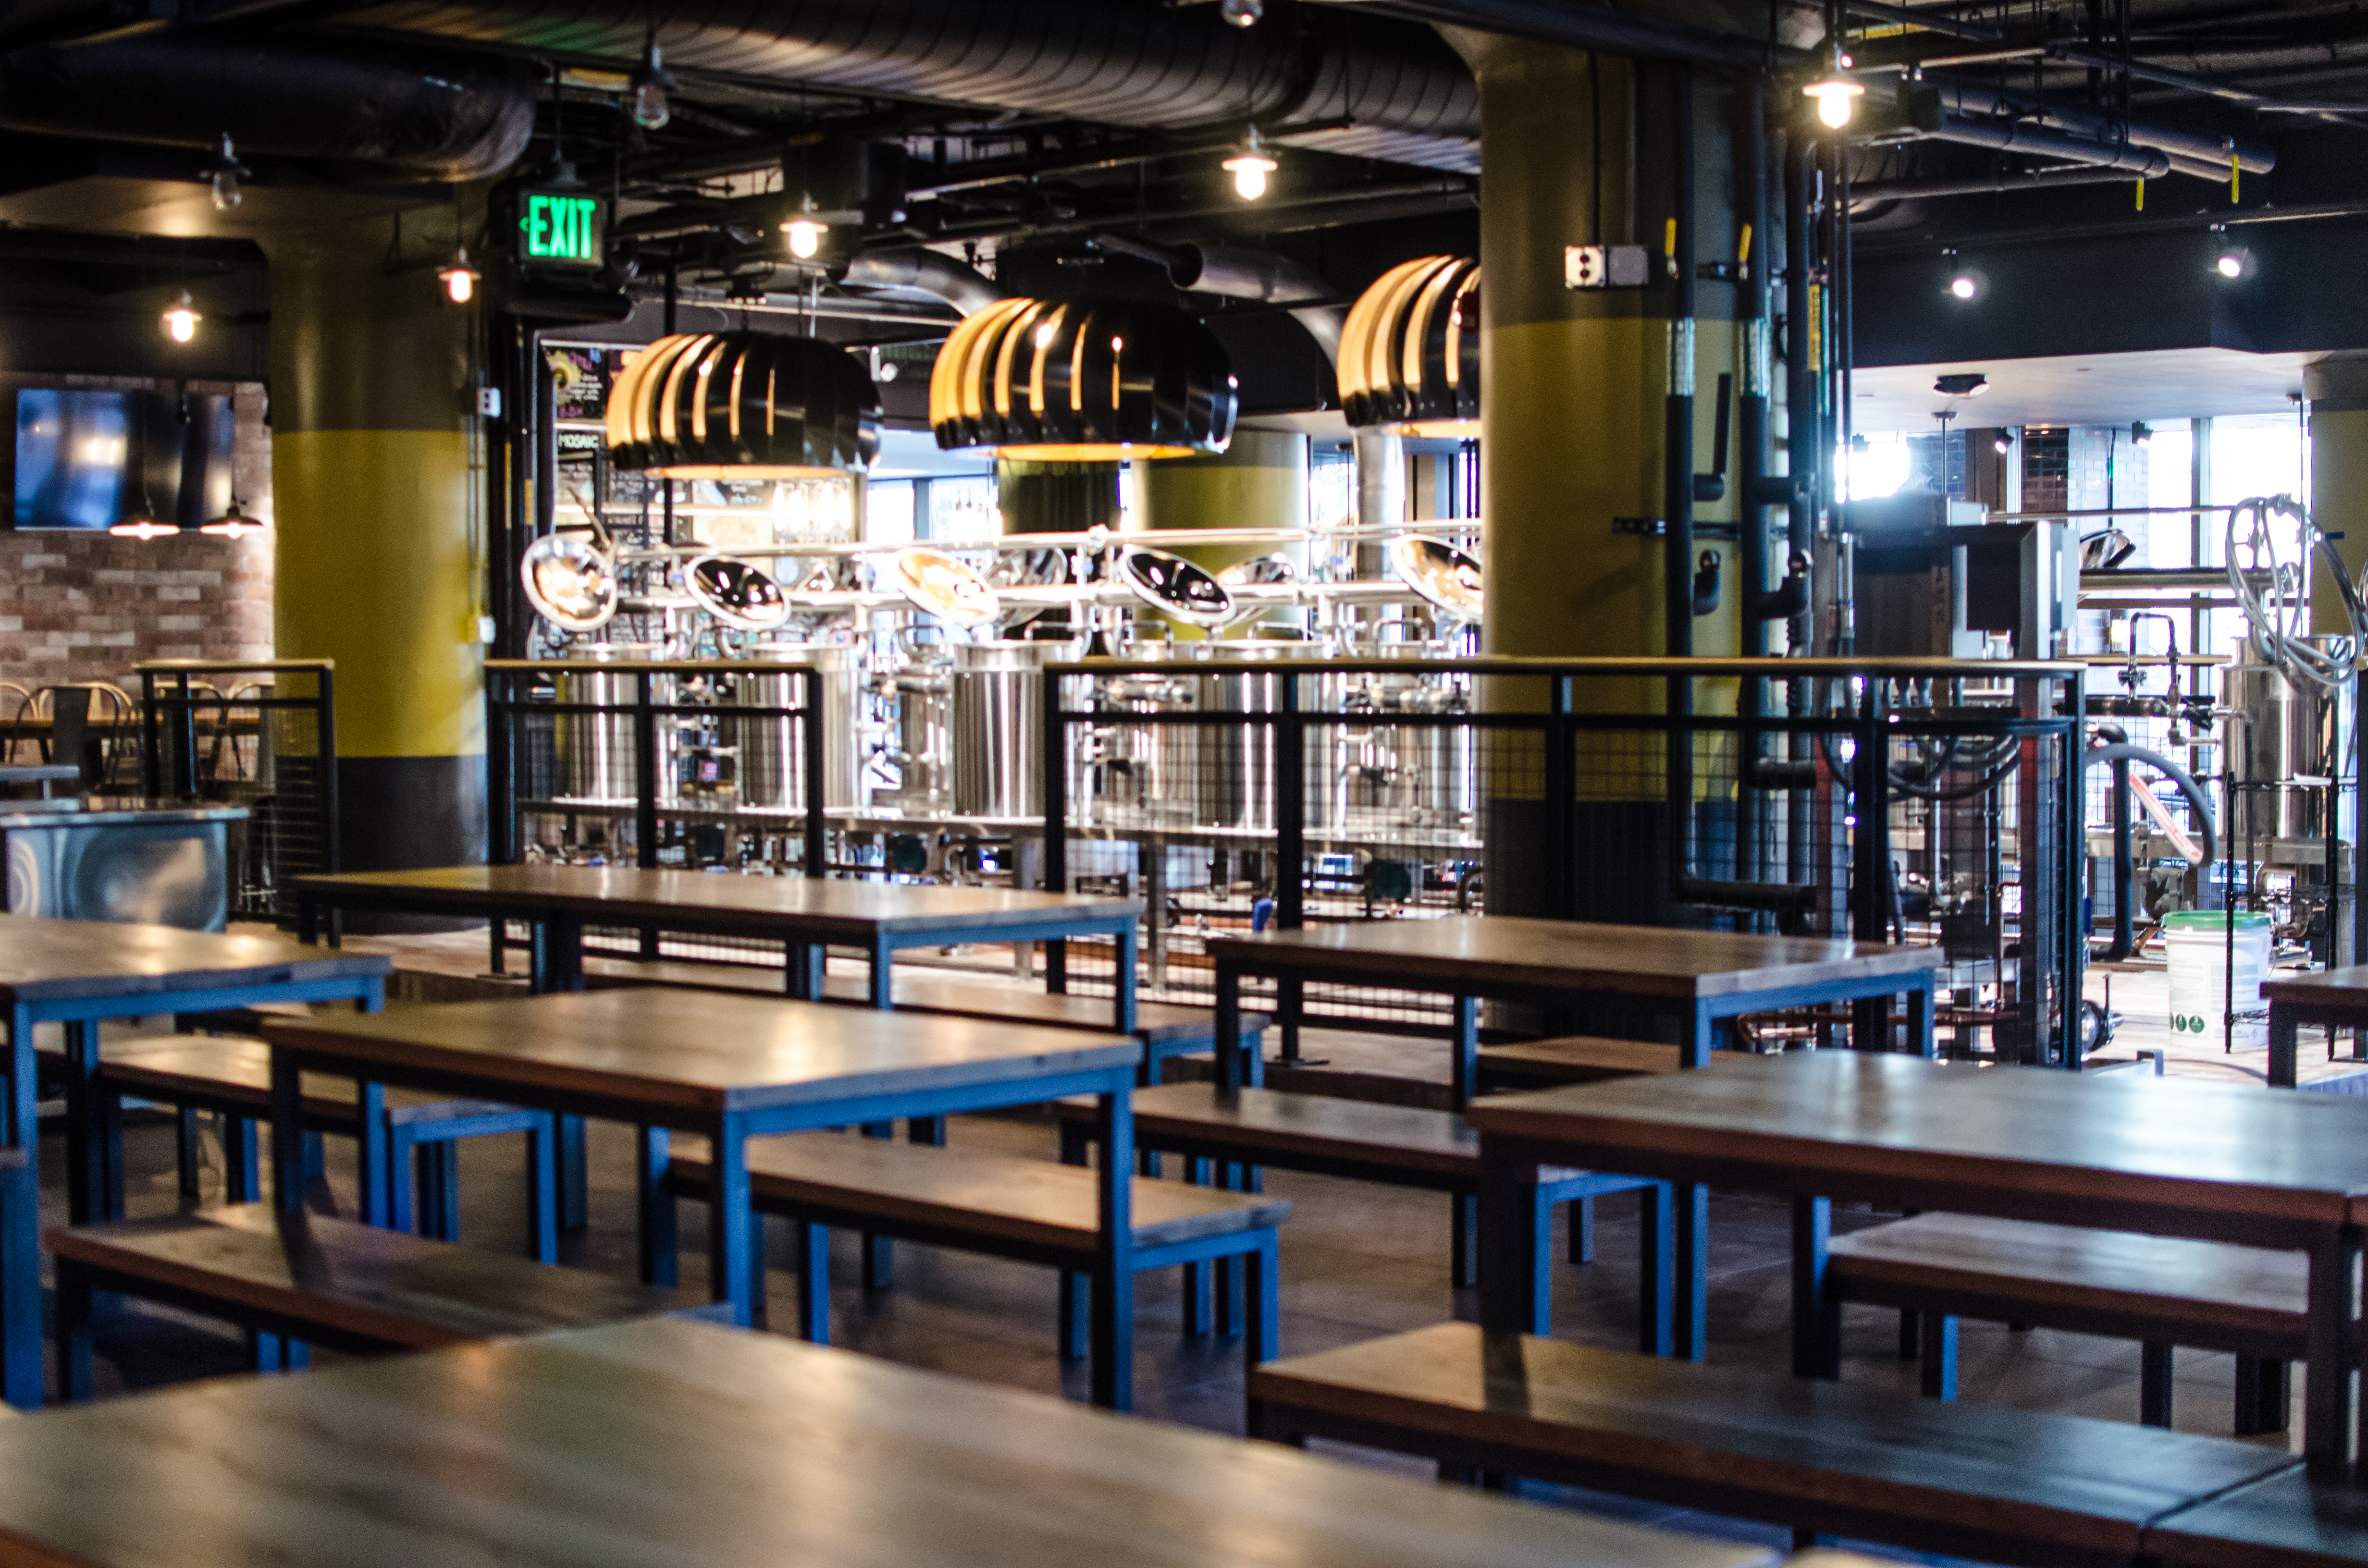 Hopsters in the Seaport District